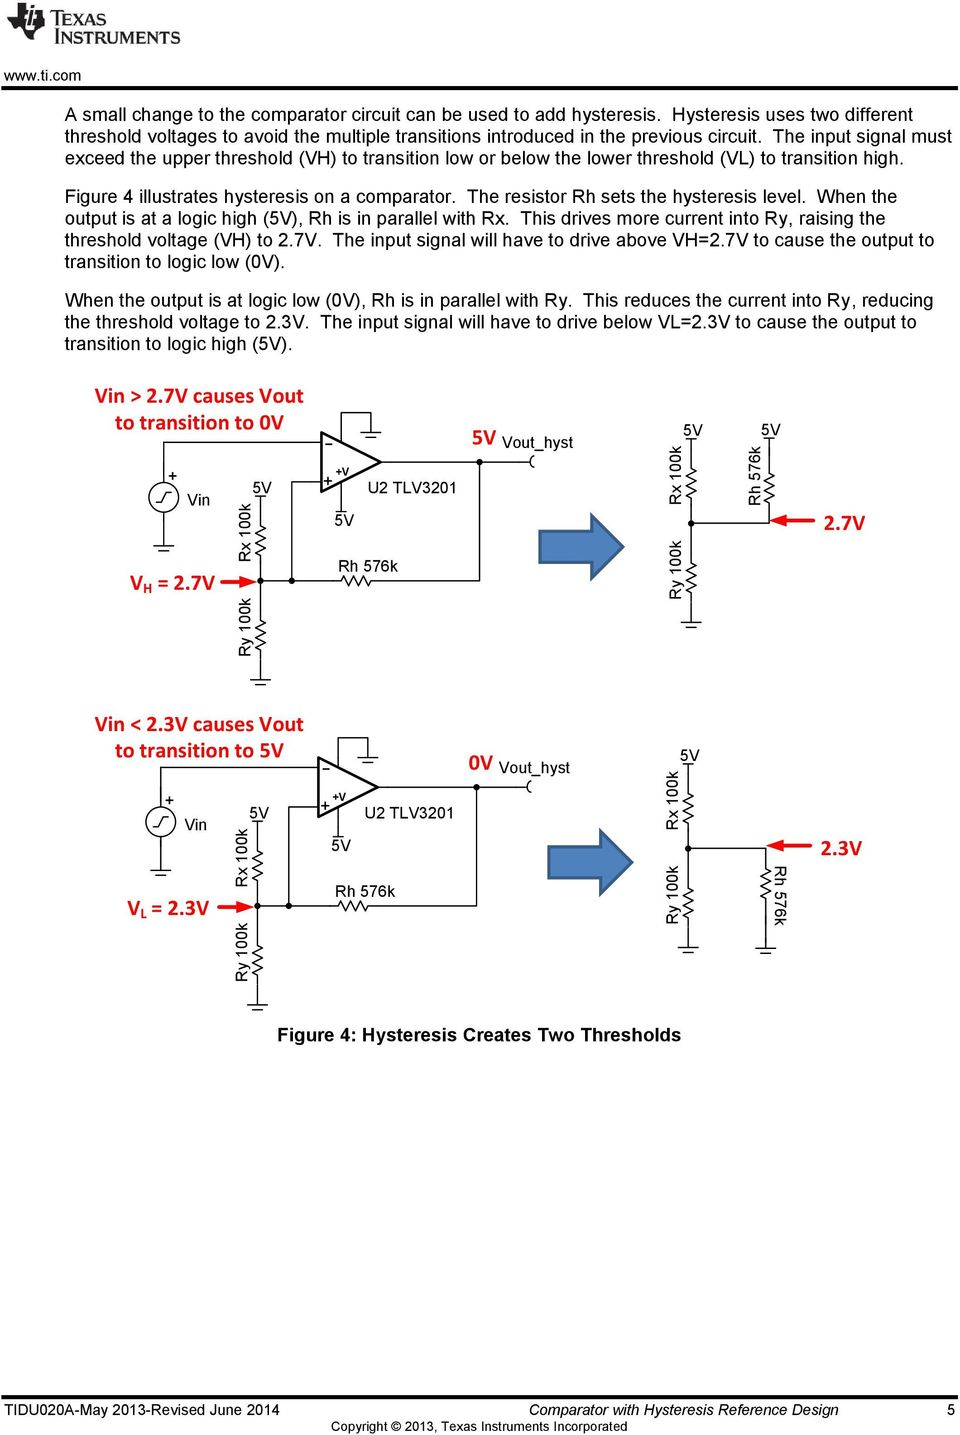 Ti Designs Precision Verified Design Comparator With Hysteresis Logic Circuit The Resistor Rh Sets Level When Output Is At A High